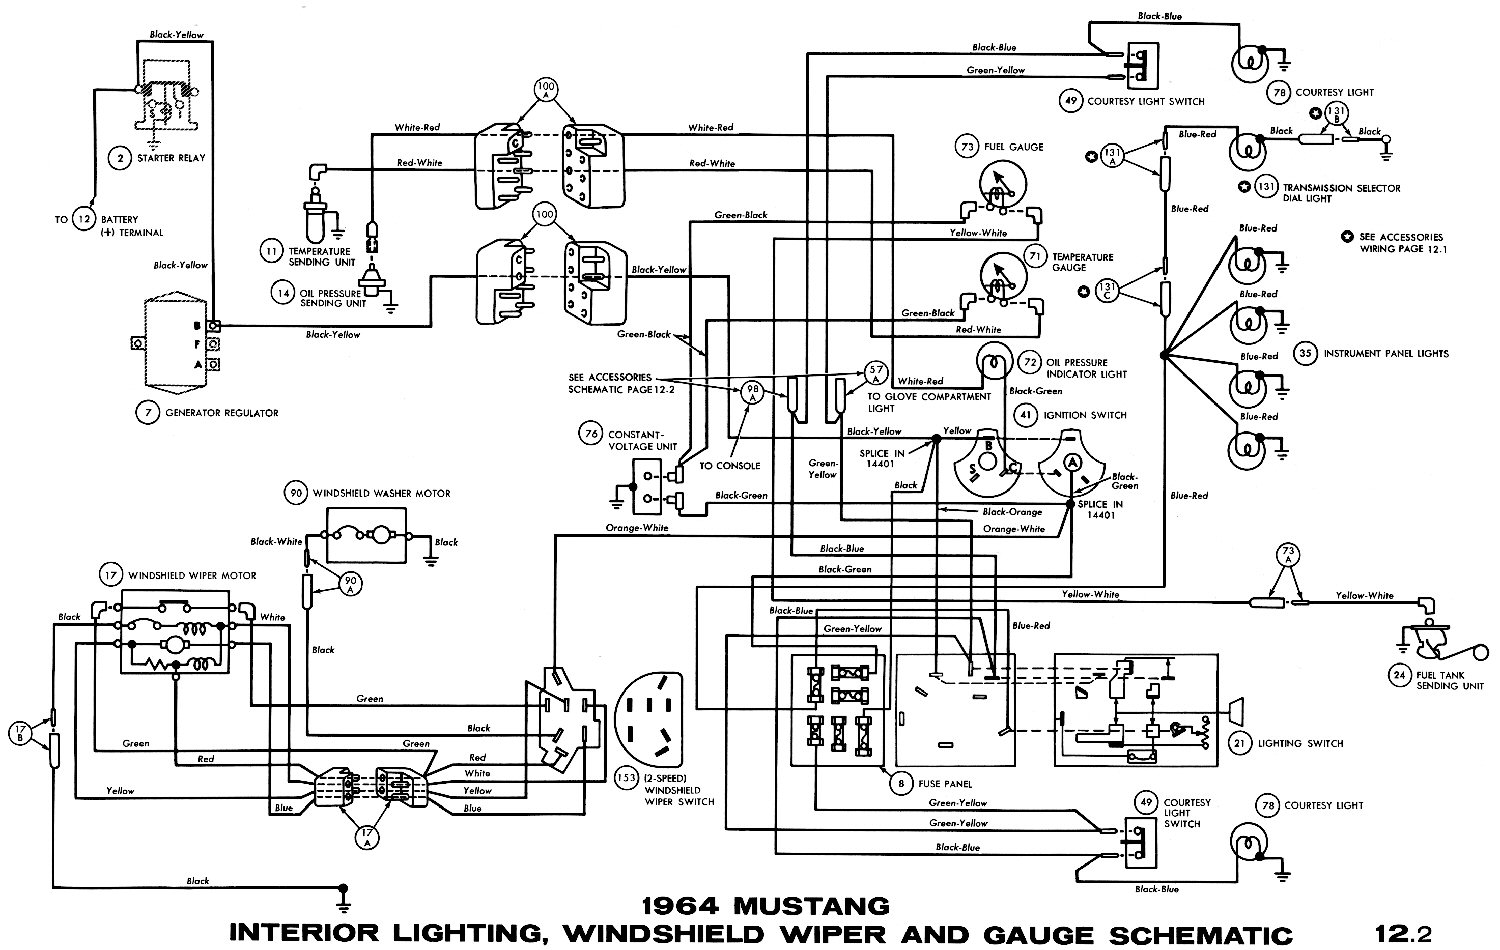 1964k 1966 mustang wiring diagram 1967 mustang wiring schematic \u2022 wiring 1967 mustang ignition wiring diagram at gsmx.co